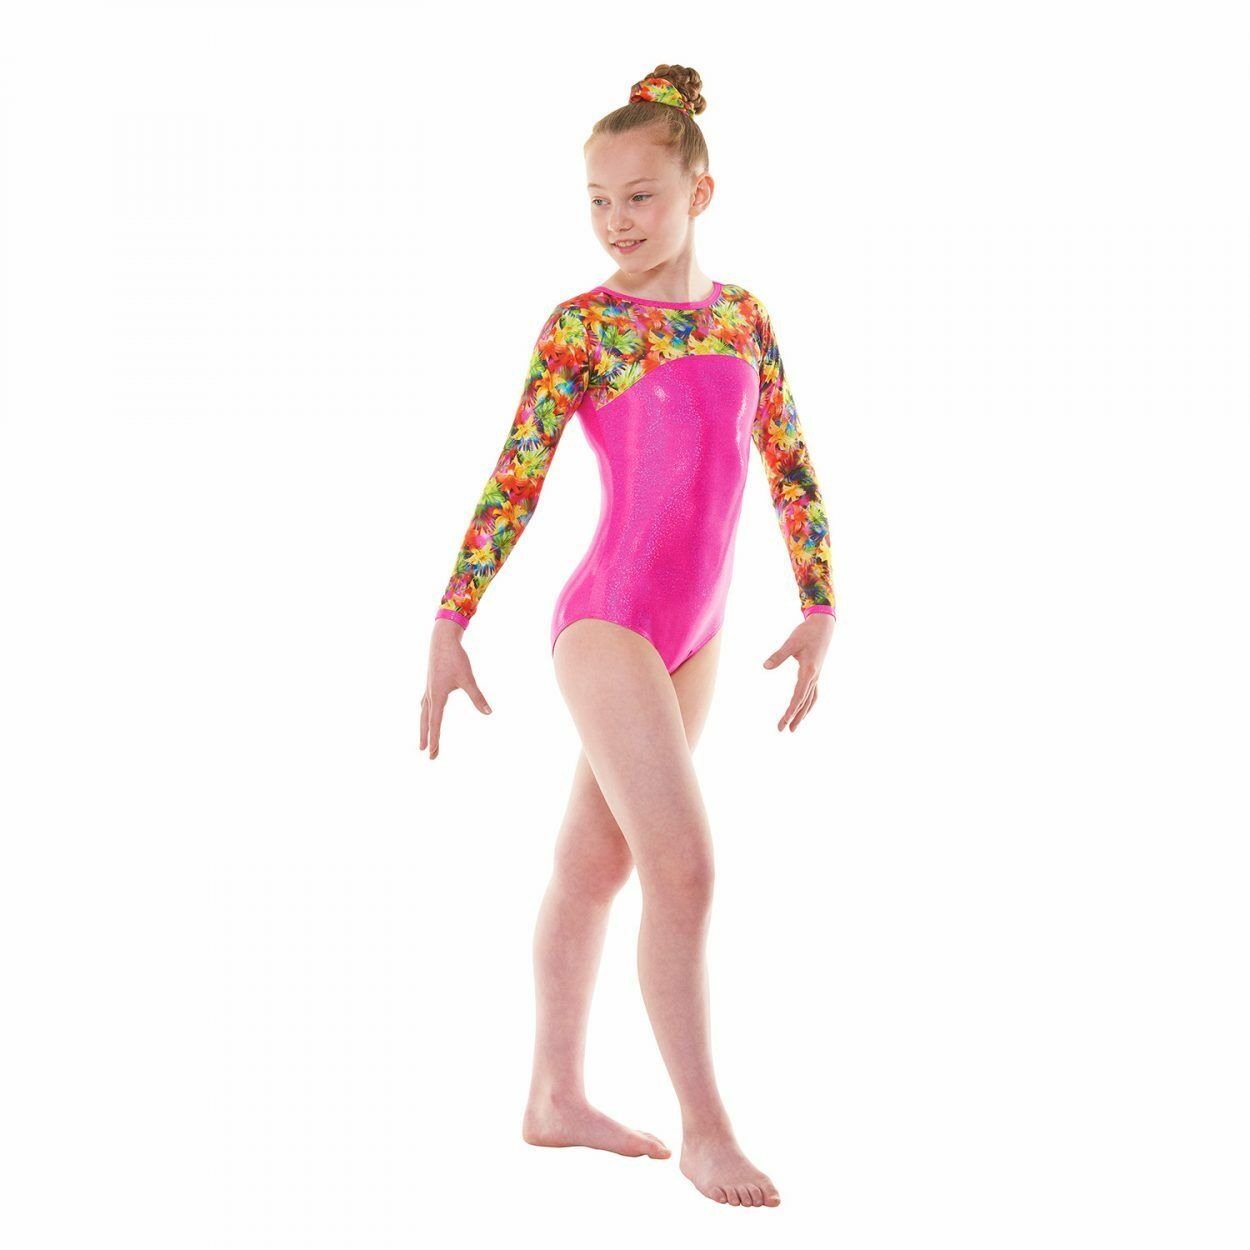 LONG SLEEVED GYMNASTICS LEOTARD PATTERNED & FOILED NYLON LYCRA (GYM51)